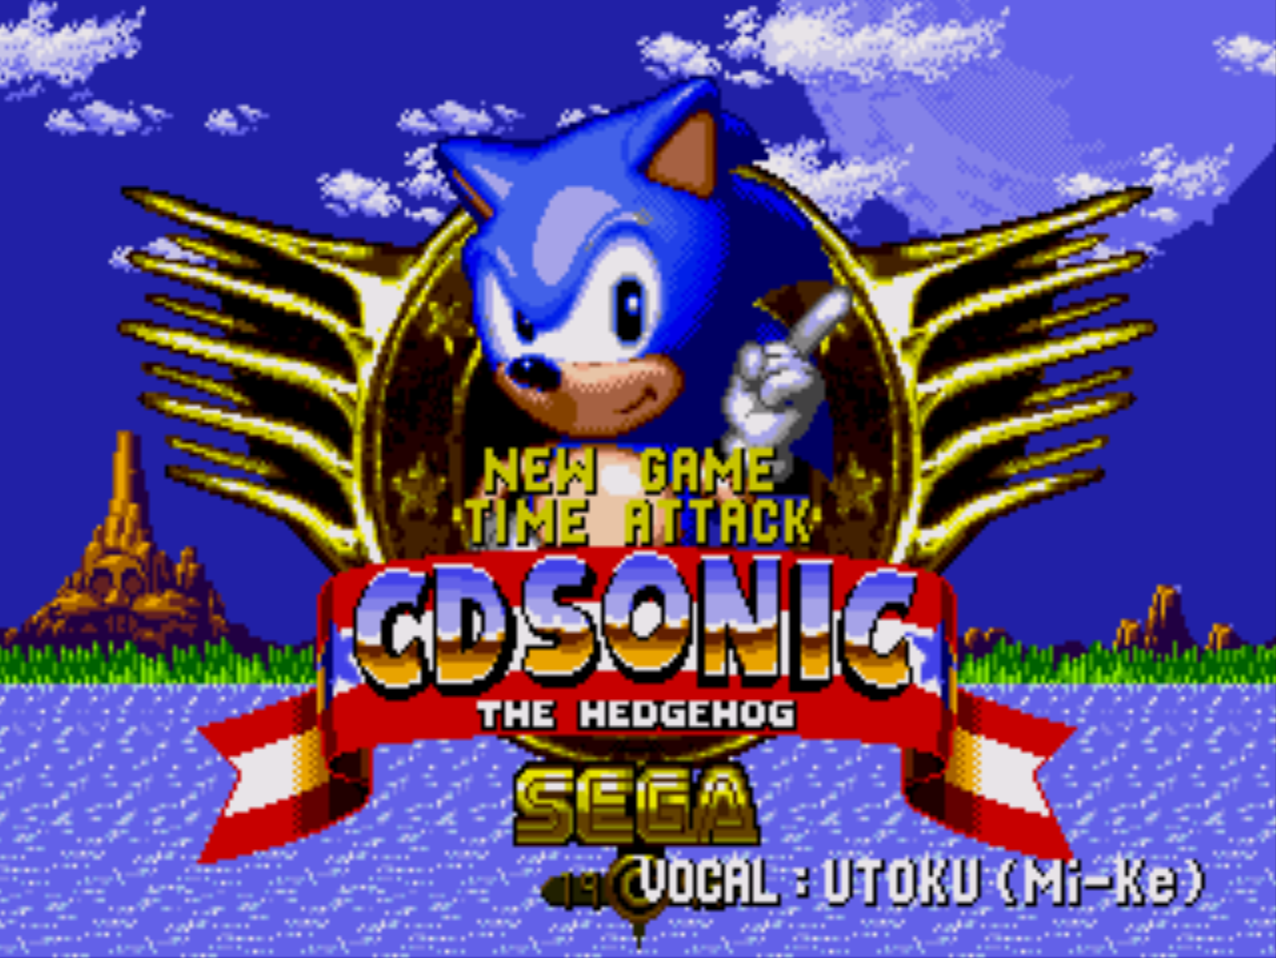 Sonic the Hedgehog CD (Прототип 510)